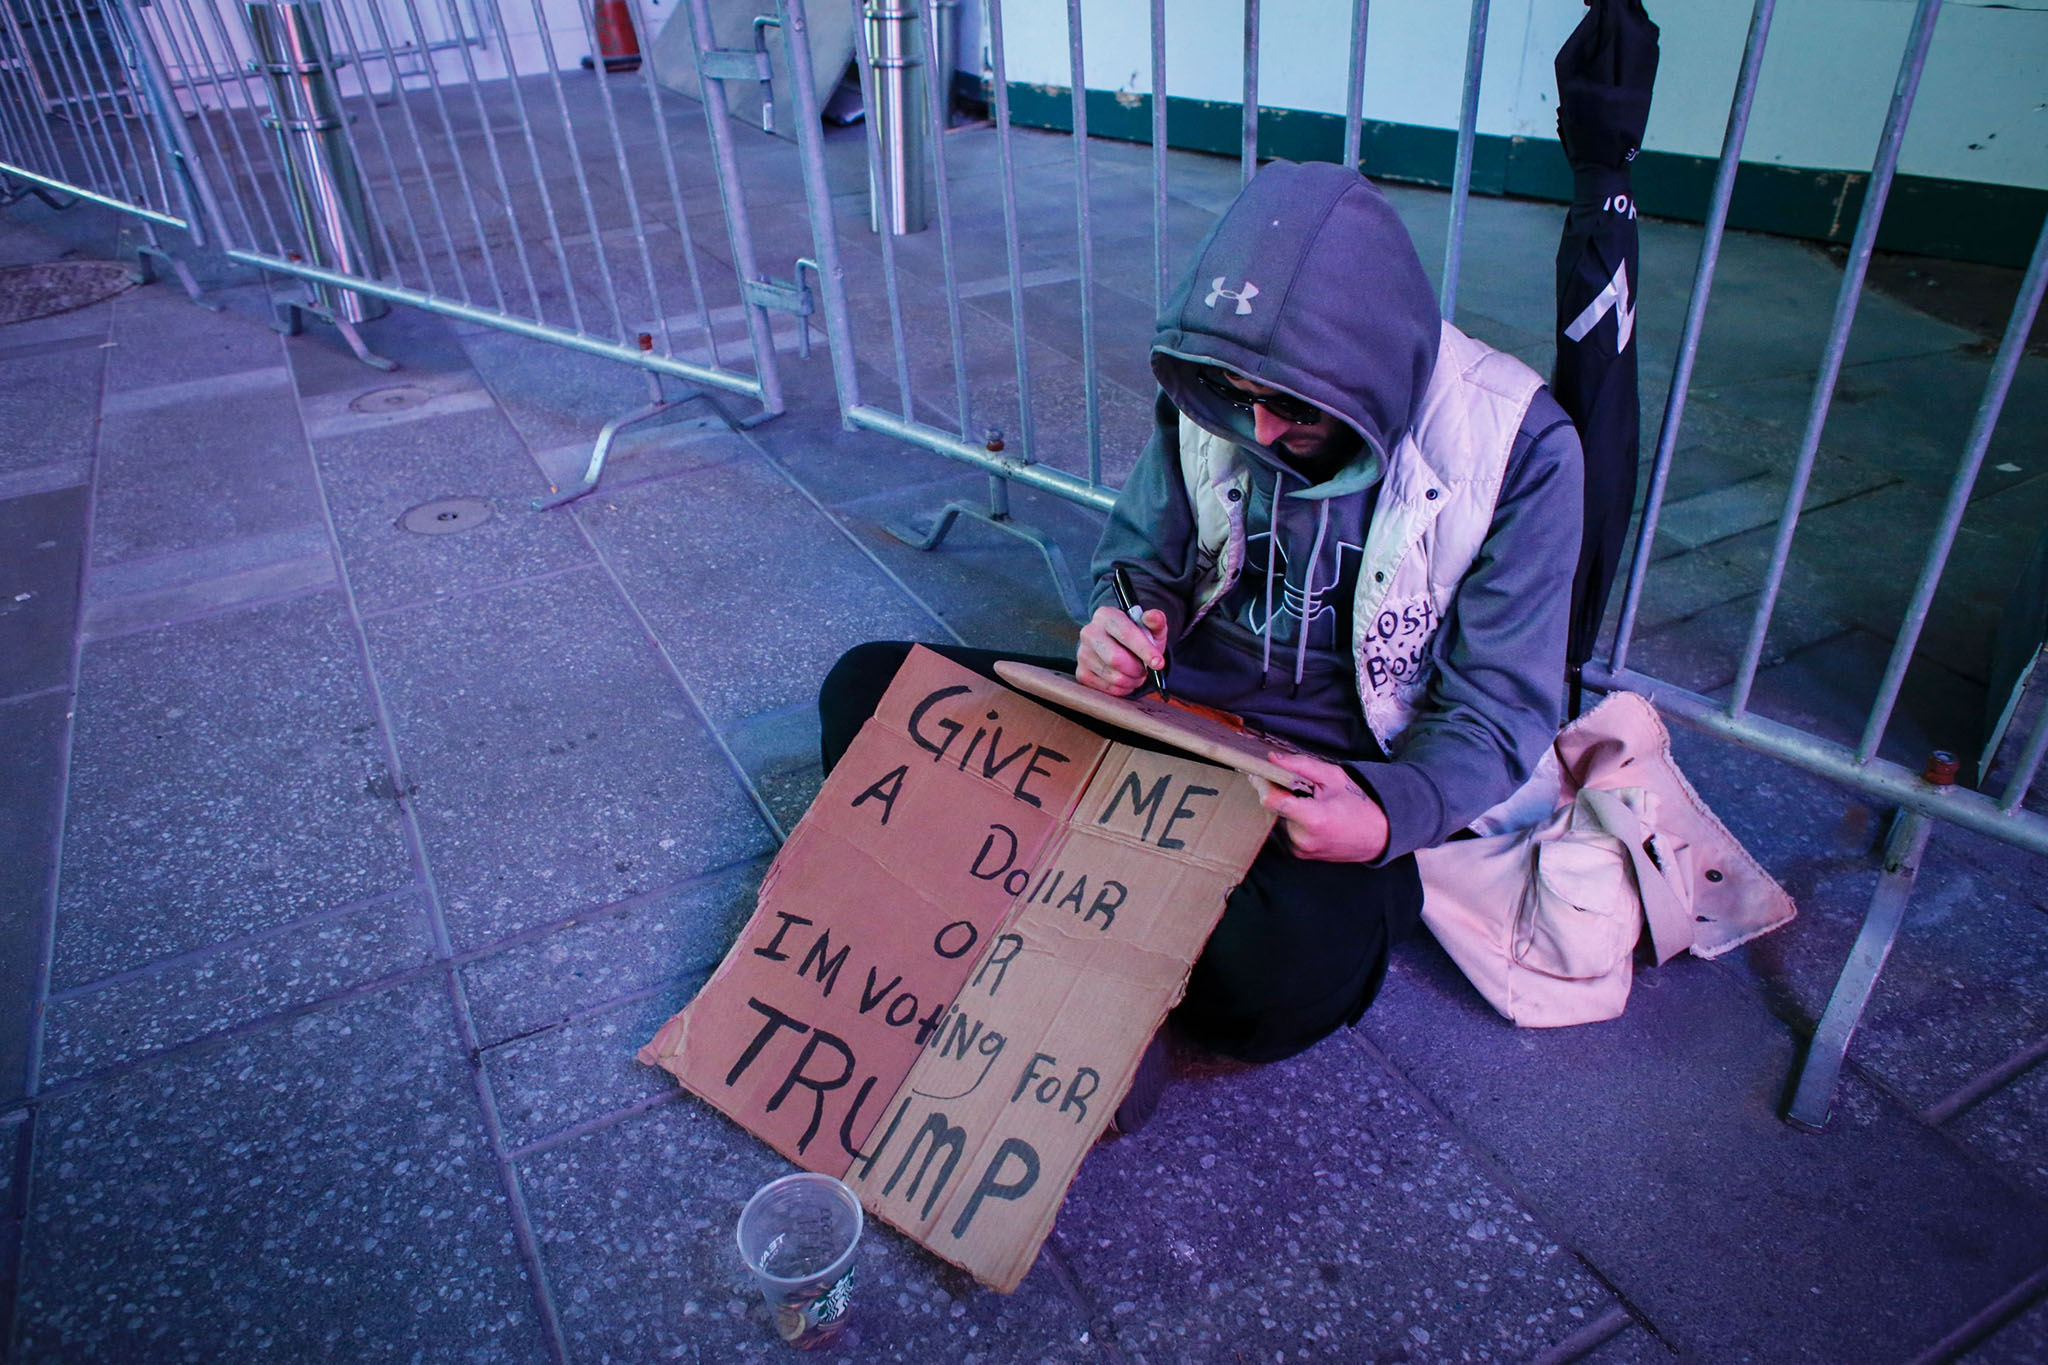 A man begs for money as he displays a placard during the second presidential debate Times Square in New York on October 9, 2016. / AFP PHOTO / KENA BETANCURKENA BETANCUR/AFP/Getty Images